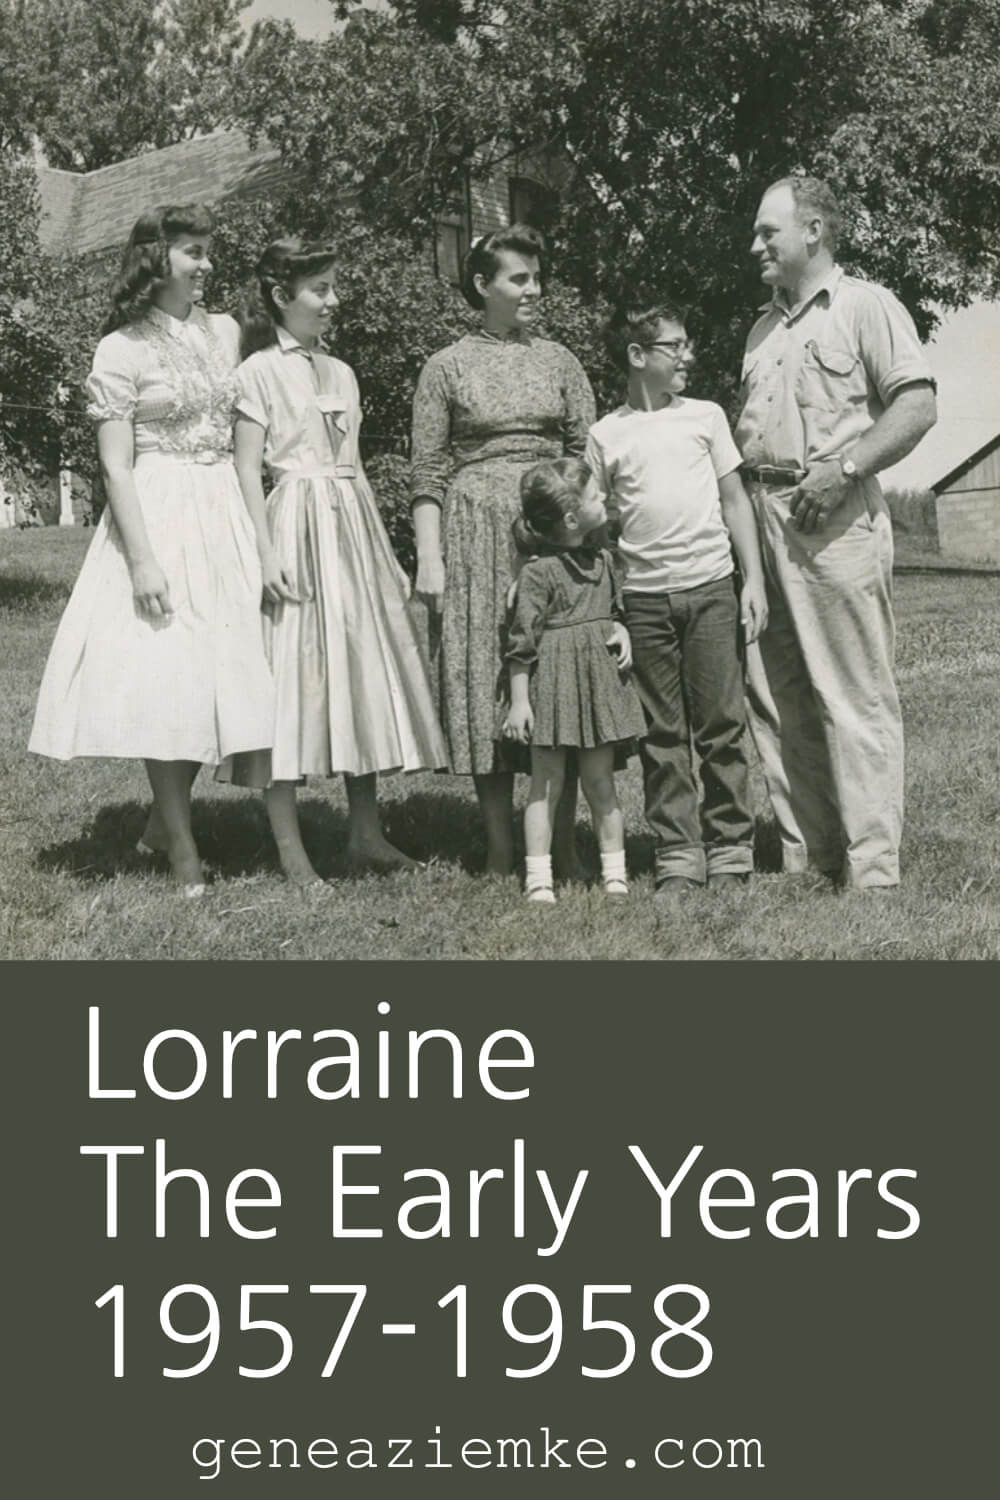 Lorraine - The Early Years - 1957-1958